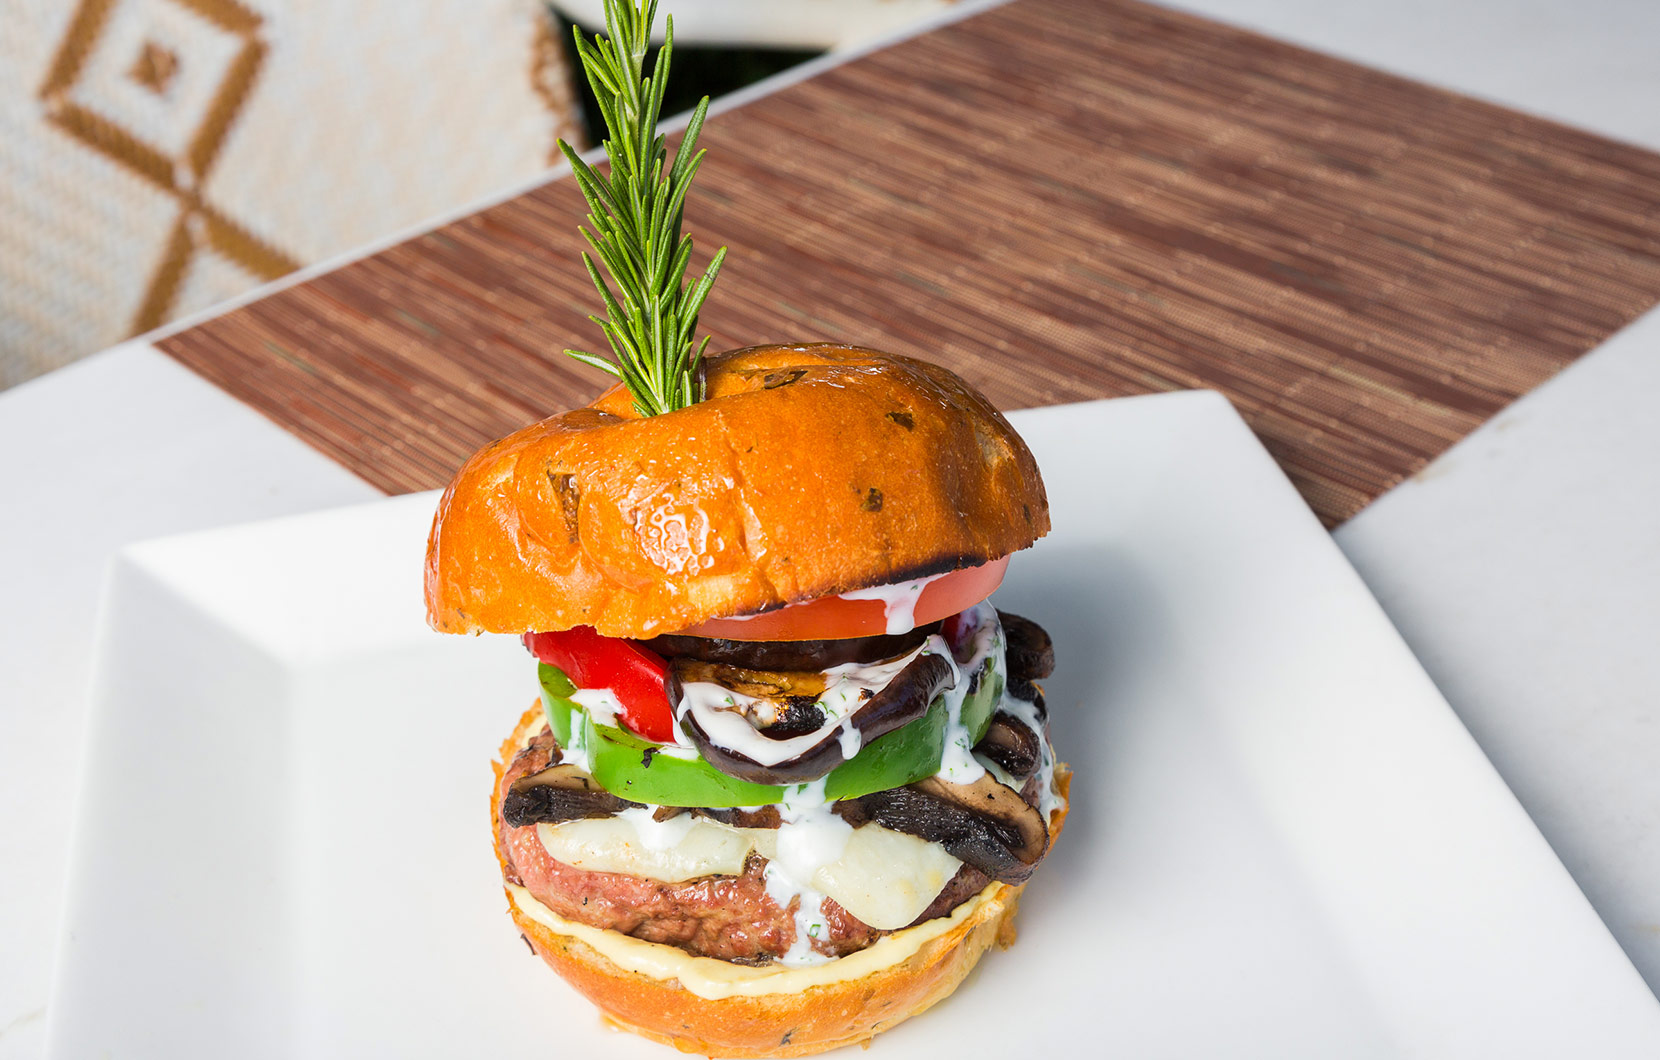 This robust lamb burger by Chef Raúl puts a Mediterranean spin on the mainstay.